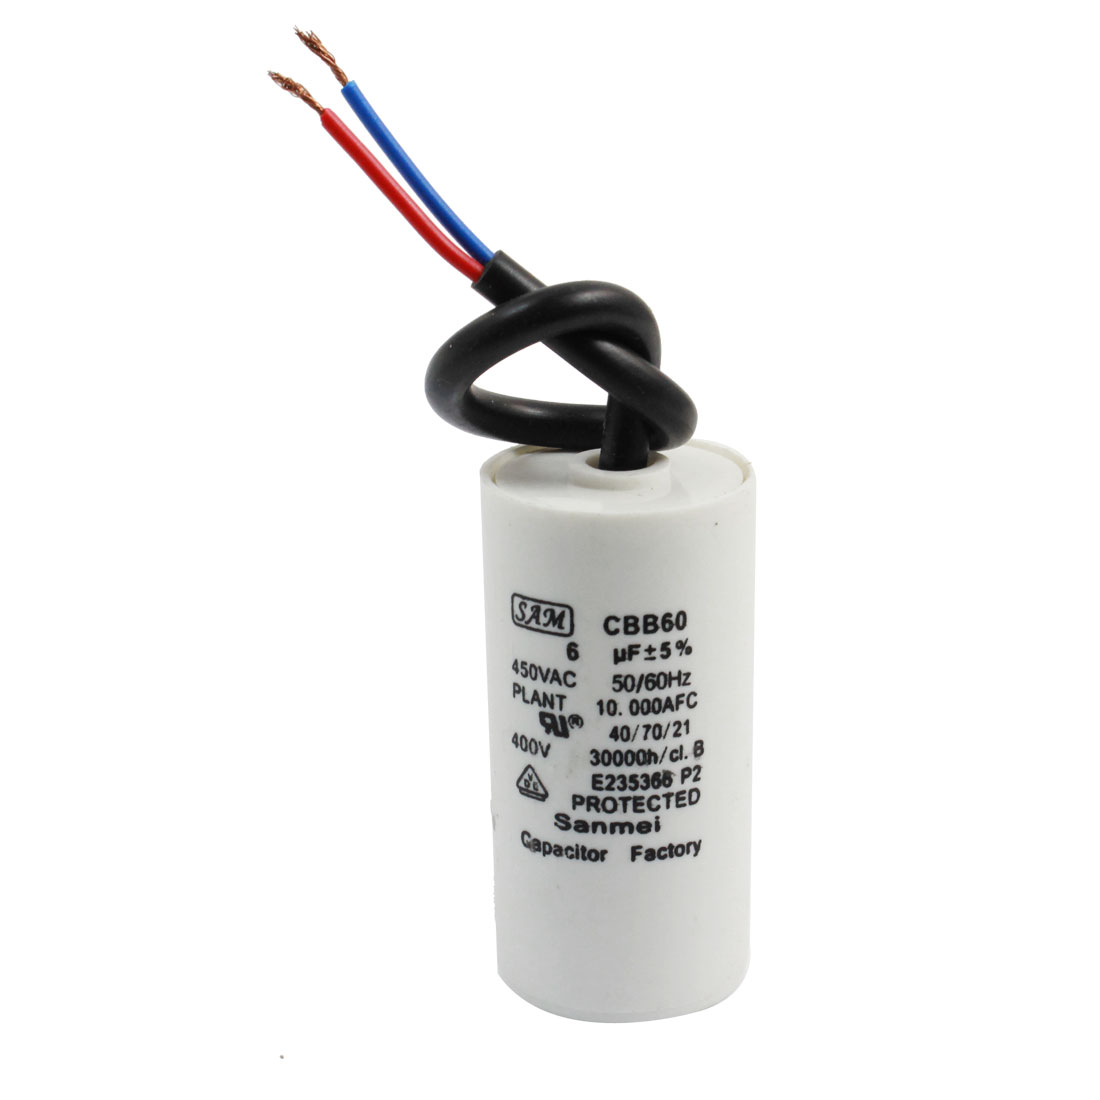 6uF 450VAC Metallized Polypropylene Film CBB60 Wired Motor Running Capacitor